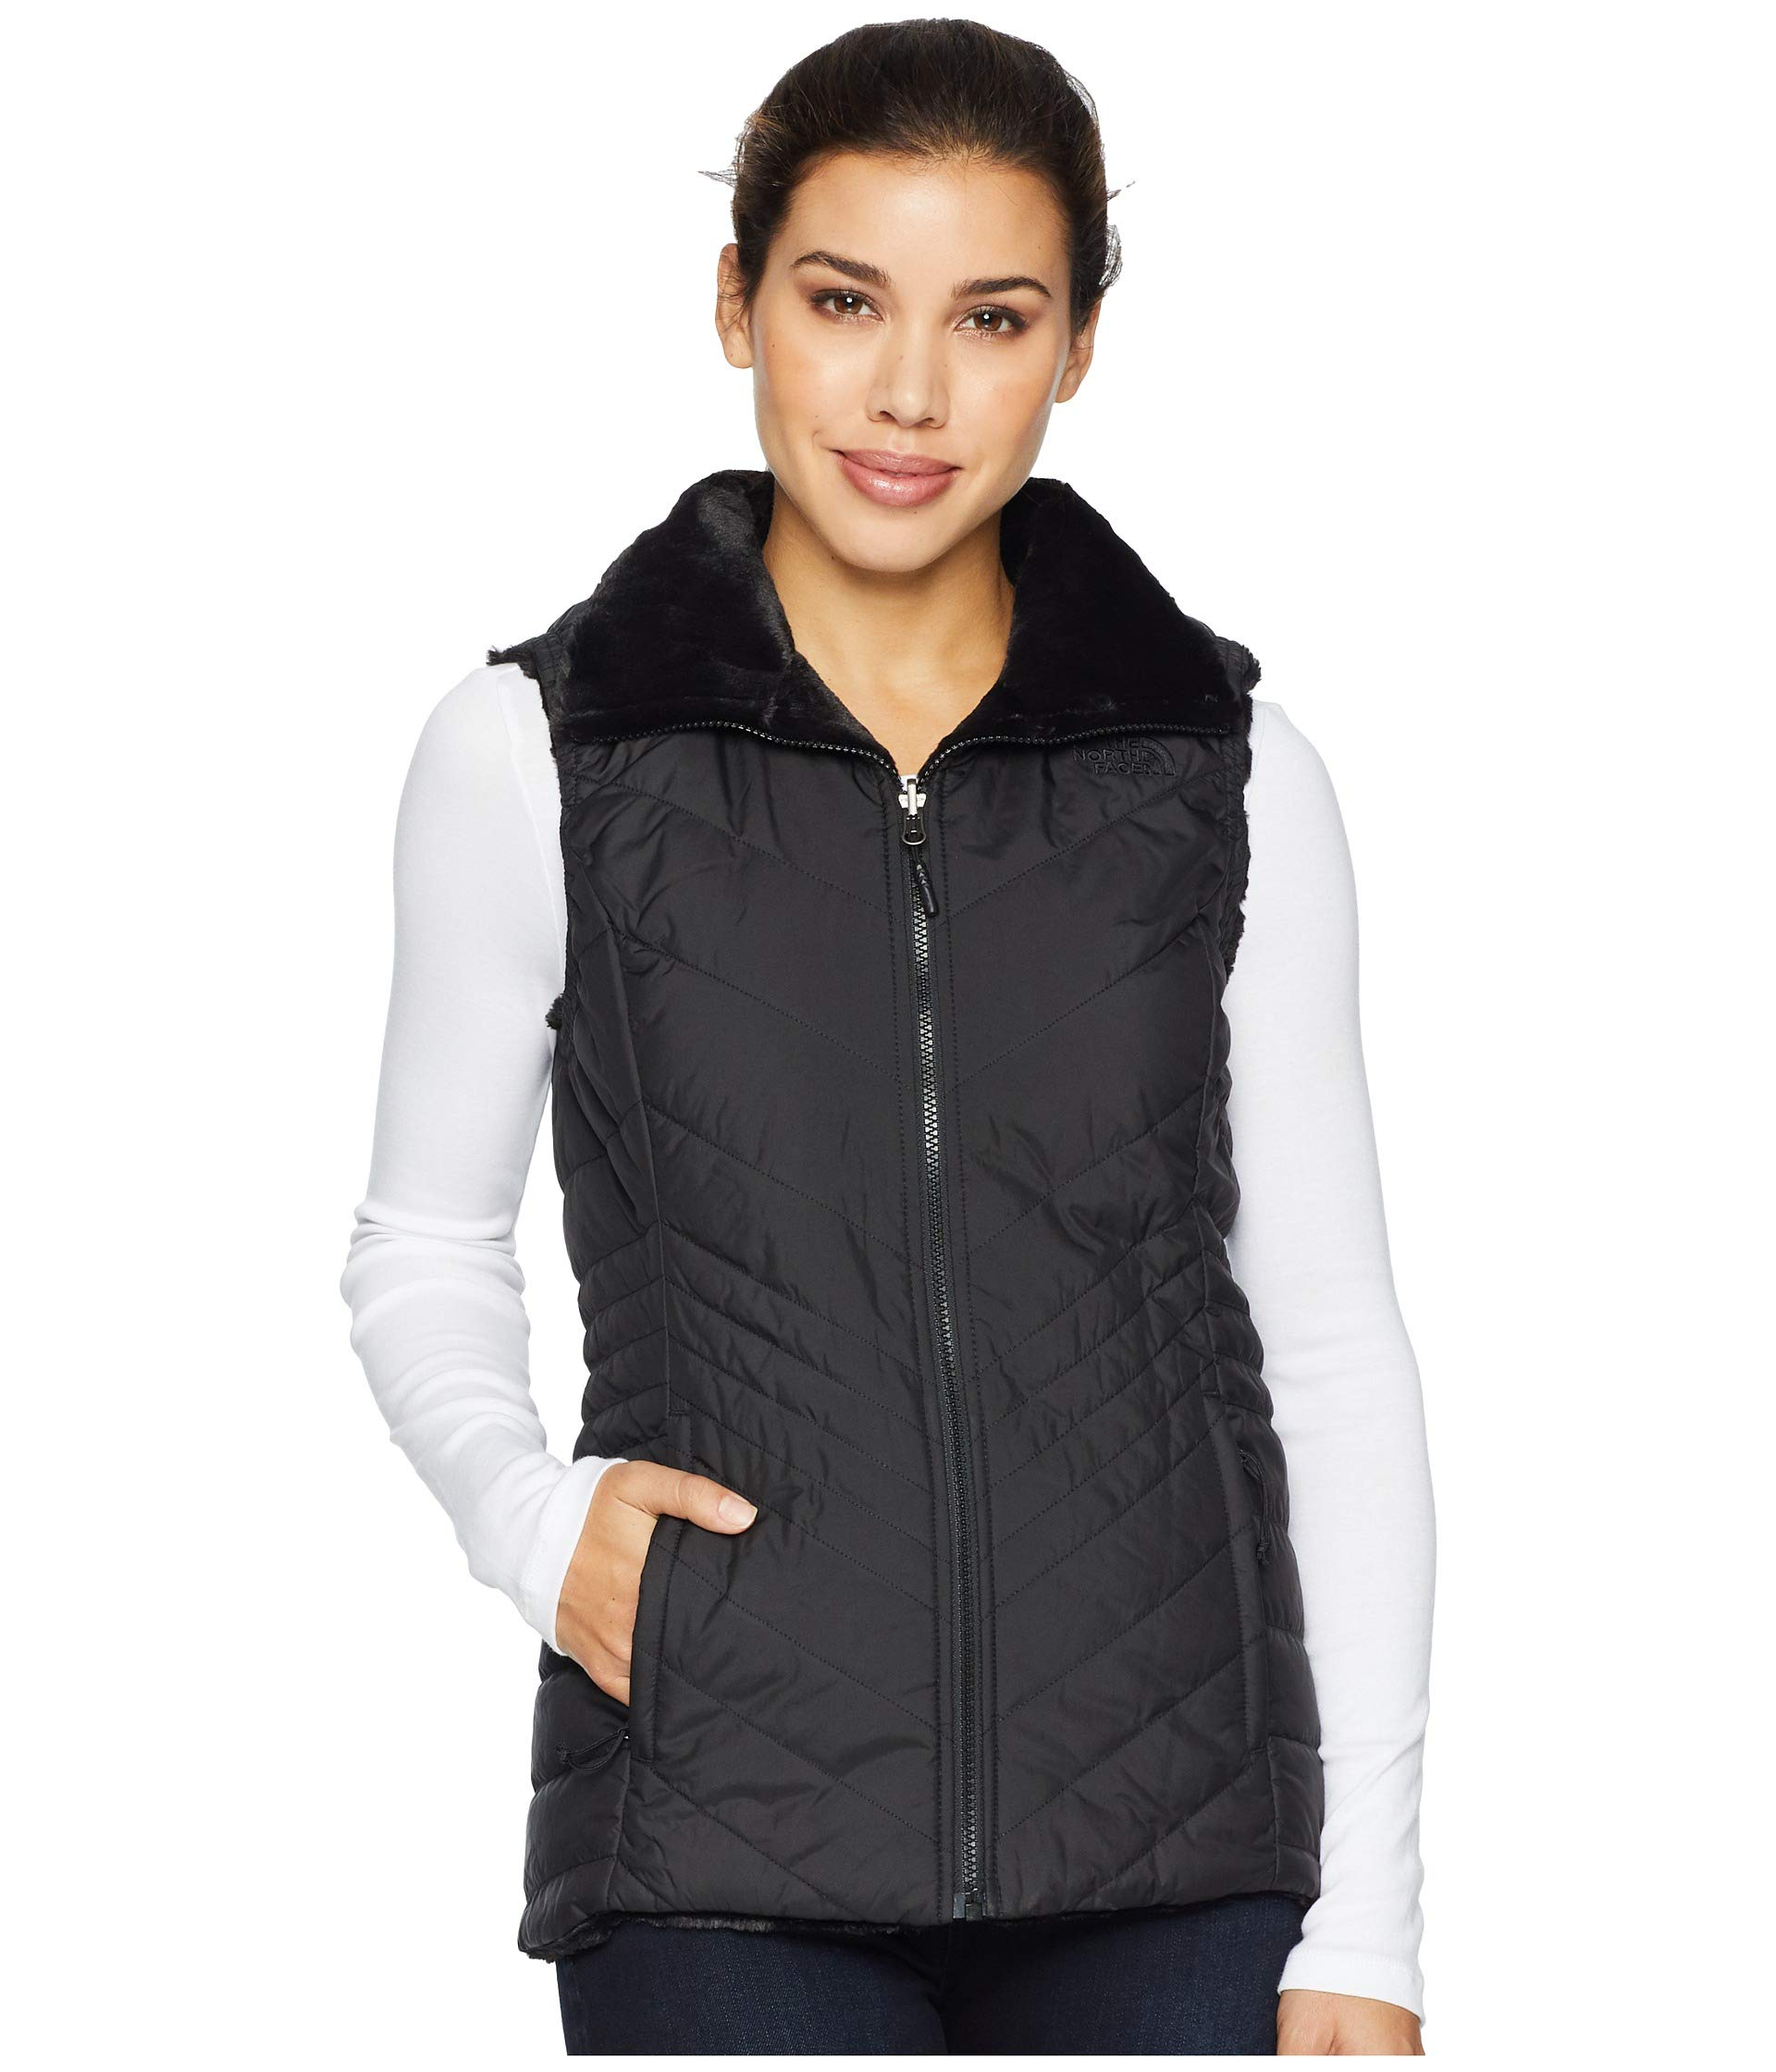 The North Face Women's Mossbud Insulated Revesible Vest - TNF Black - XL by The North Face